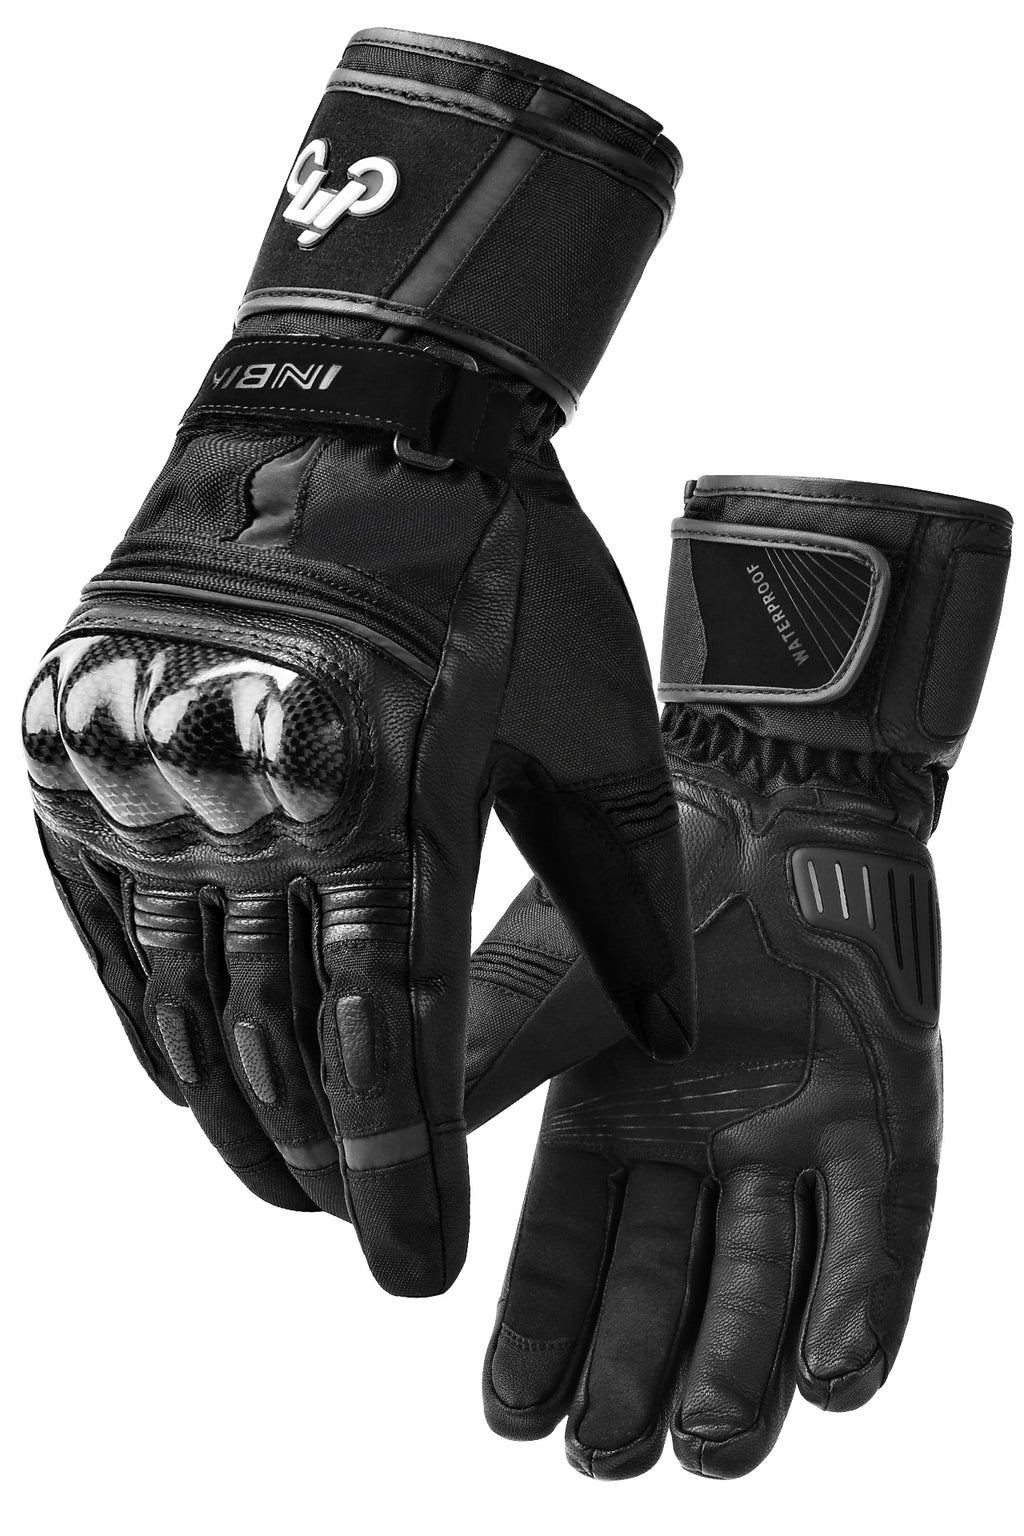 INBIKE Winter Motorcycle Gloves